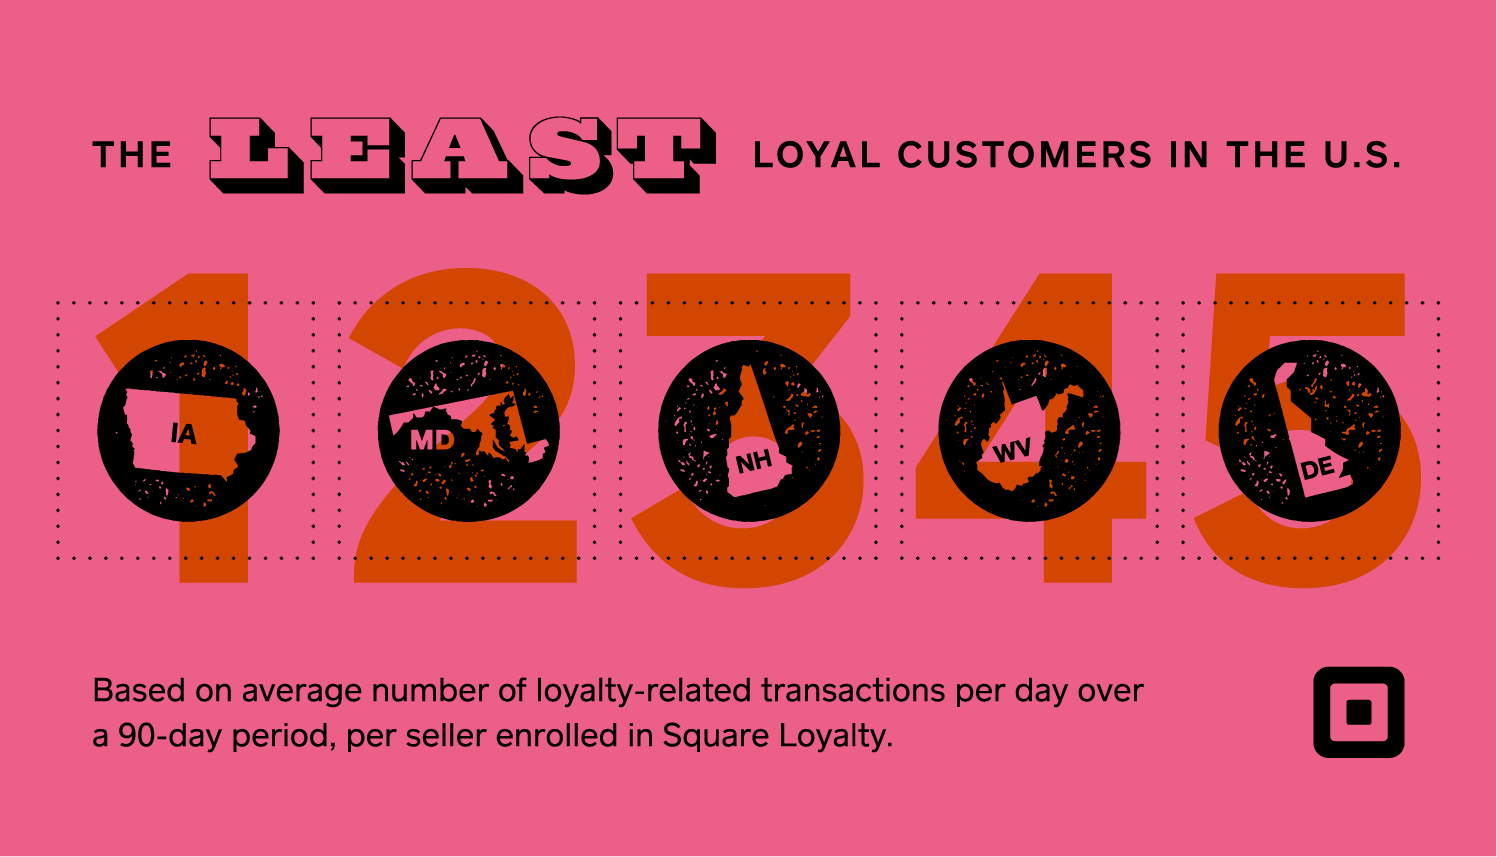 least loyal customers infographic